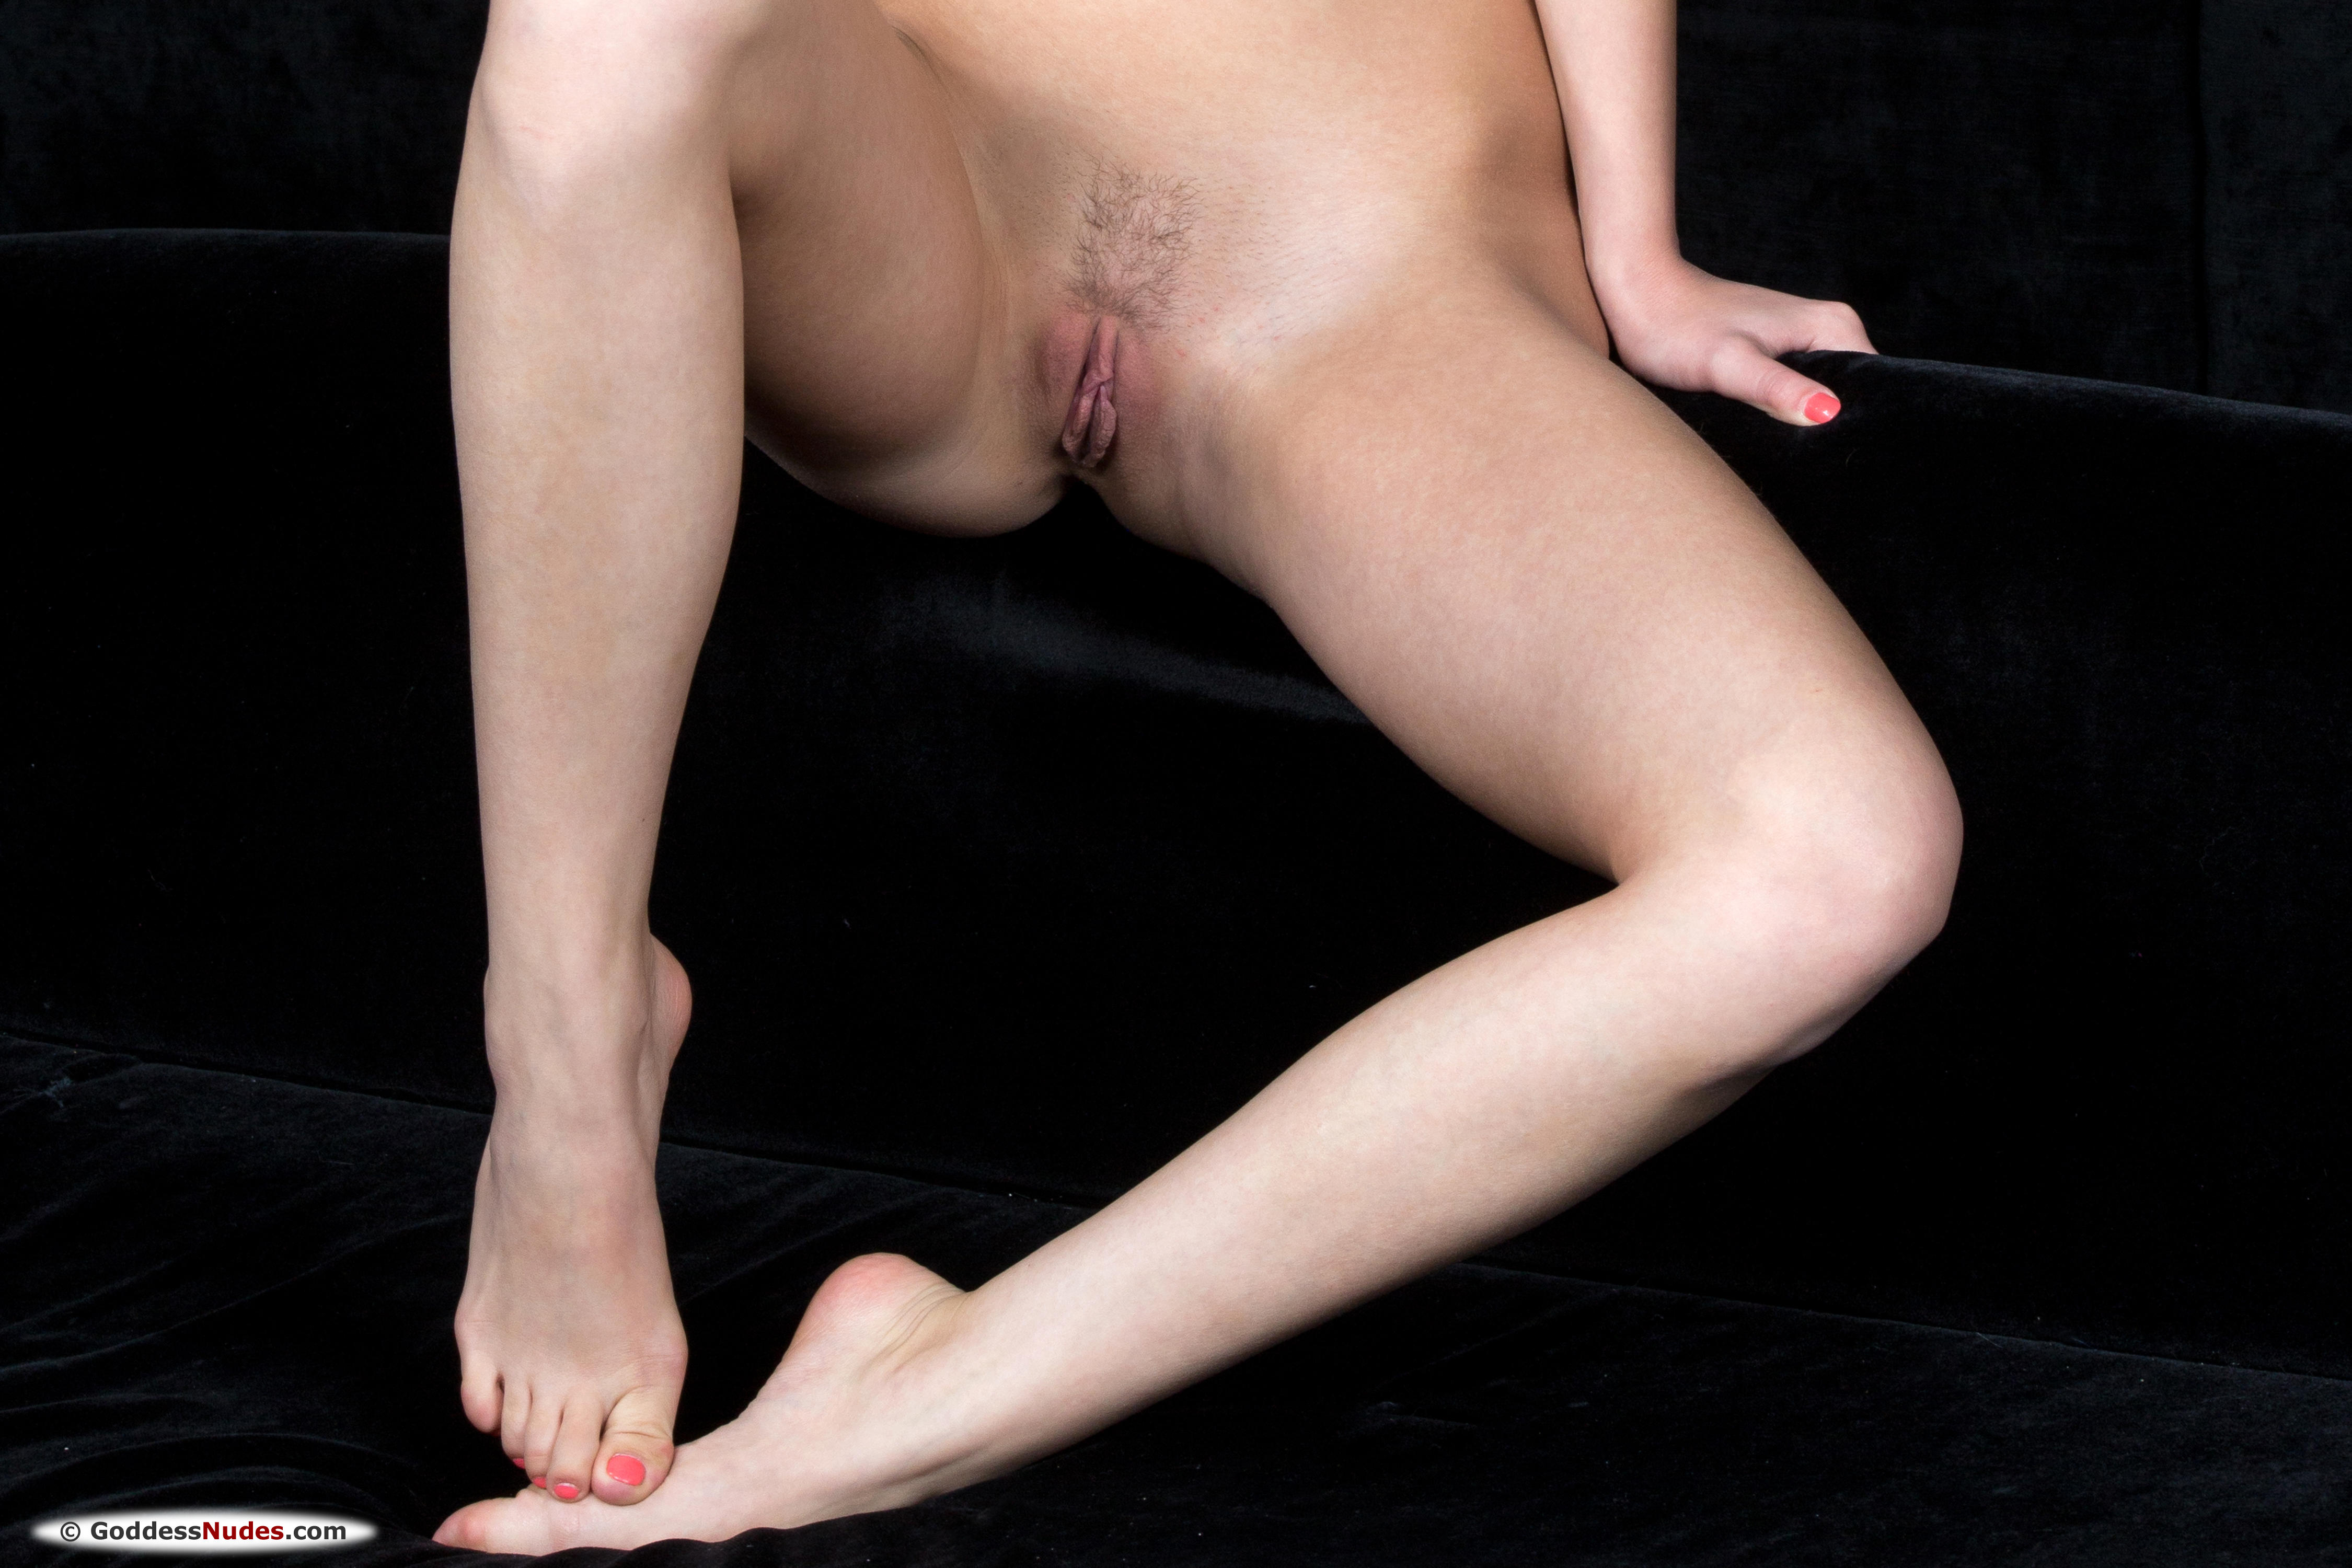 Download photo 4500x3000, nikia a, naked, pussy, model ...